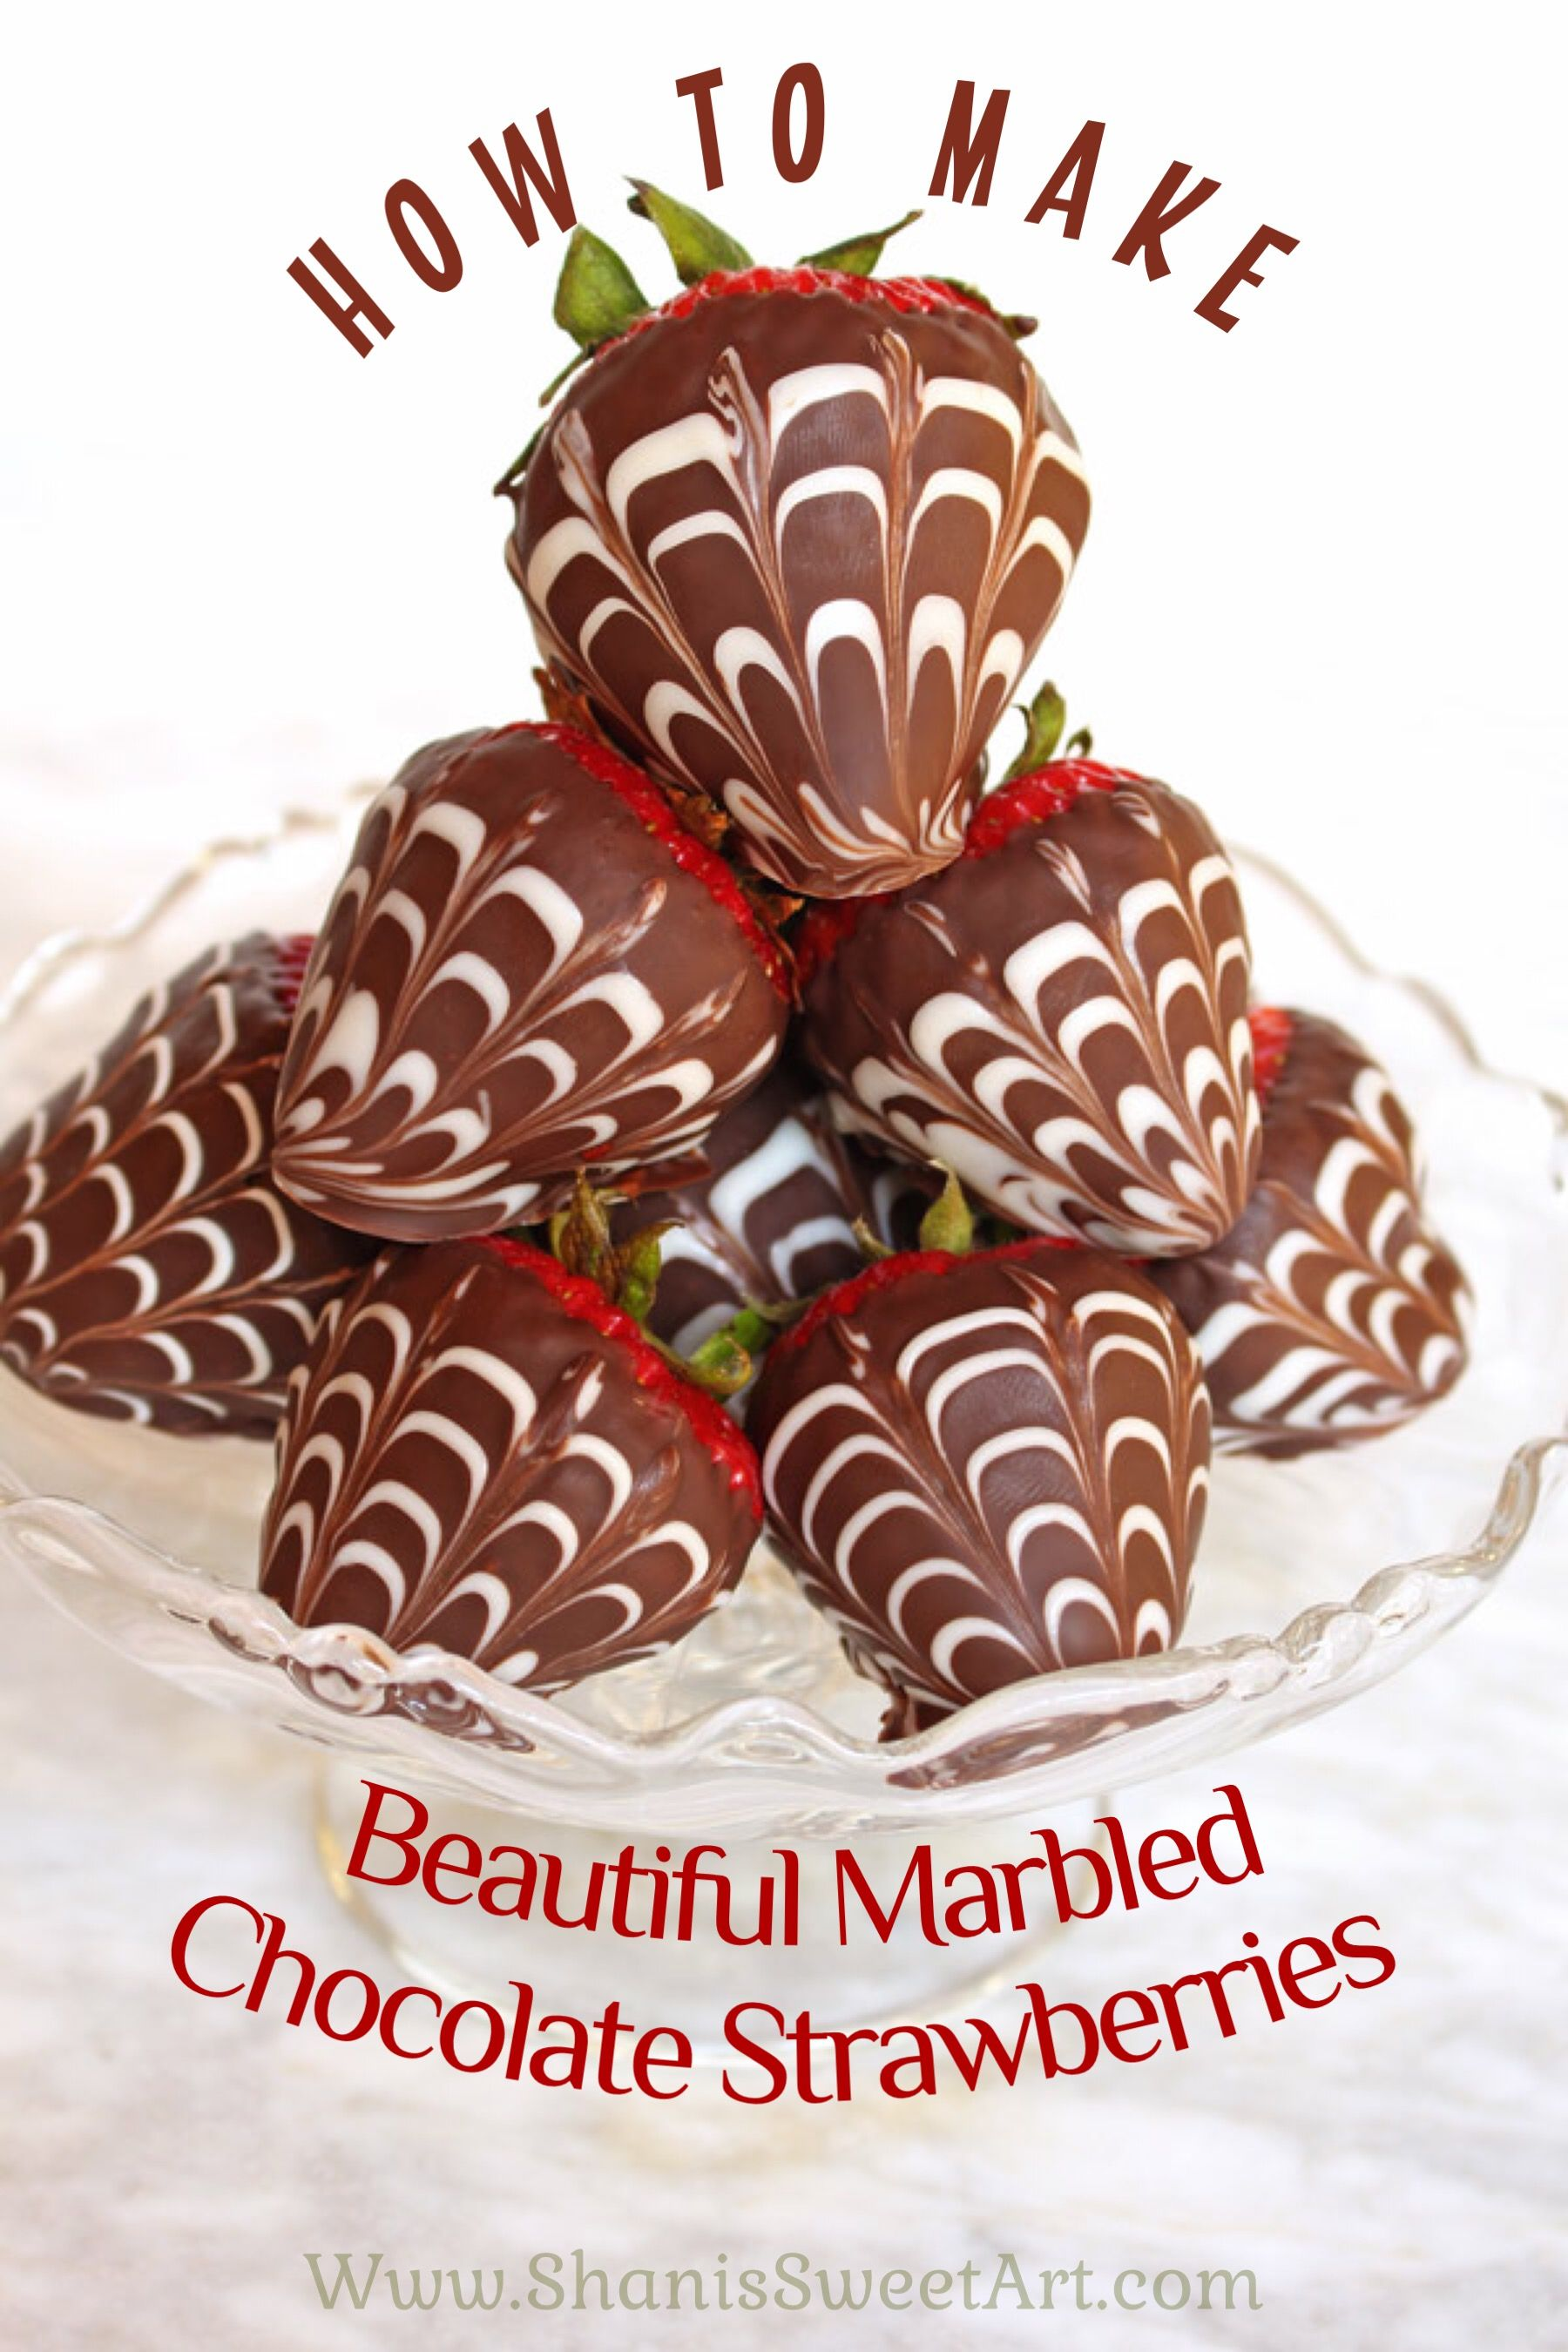 How To Make Beautiful Marbled Chocolate Dipped Strawberries Chocolate Dipped Strawberries Chocolate Covered Strawberry Recipe Chocolate Covered Fruit